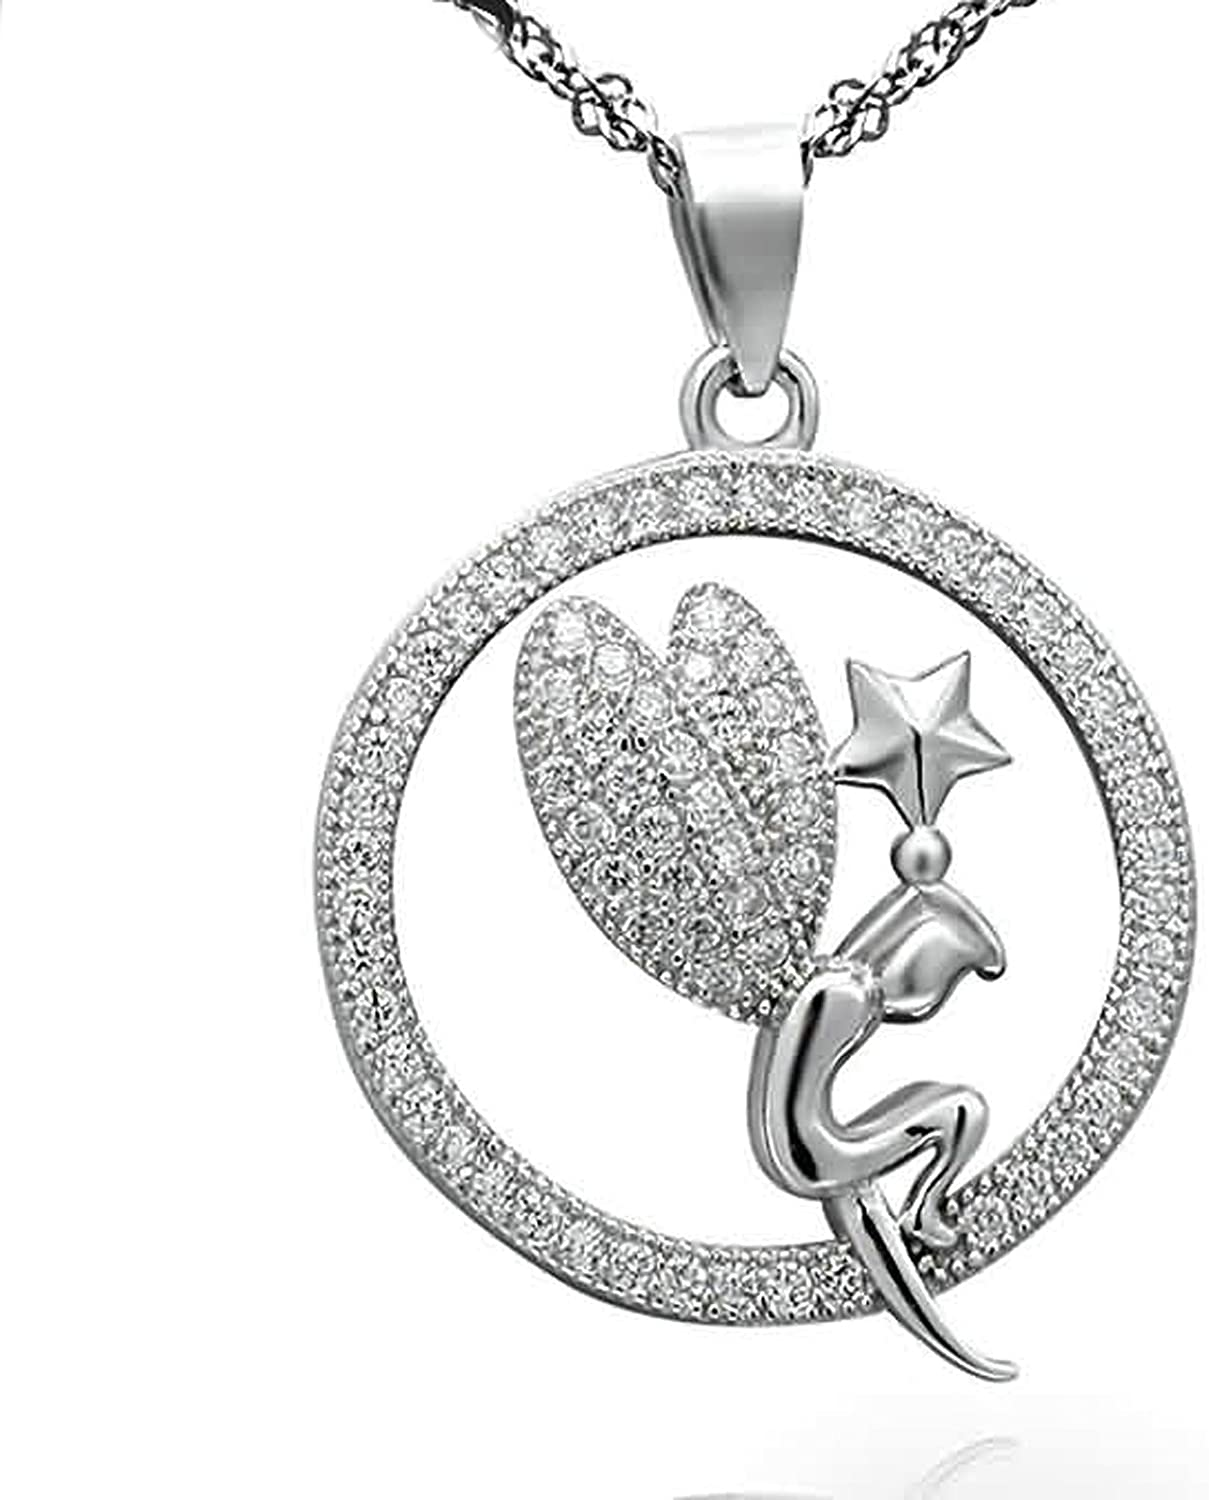 AMDXD Jewelry Women Silver Plated Pendant Necklaces Circle Angel Star Cubic Zirconia White 2.2X2.1CM